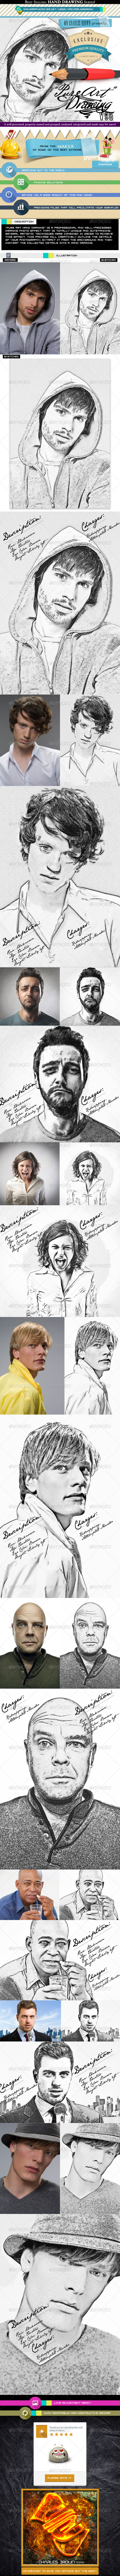 GraphicRiver Pure Art Hand Drawing 95 Police Suspect Sketch 8353307